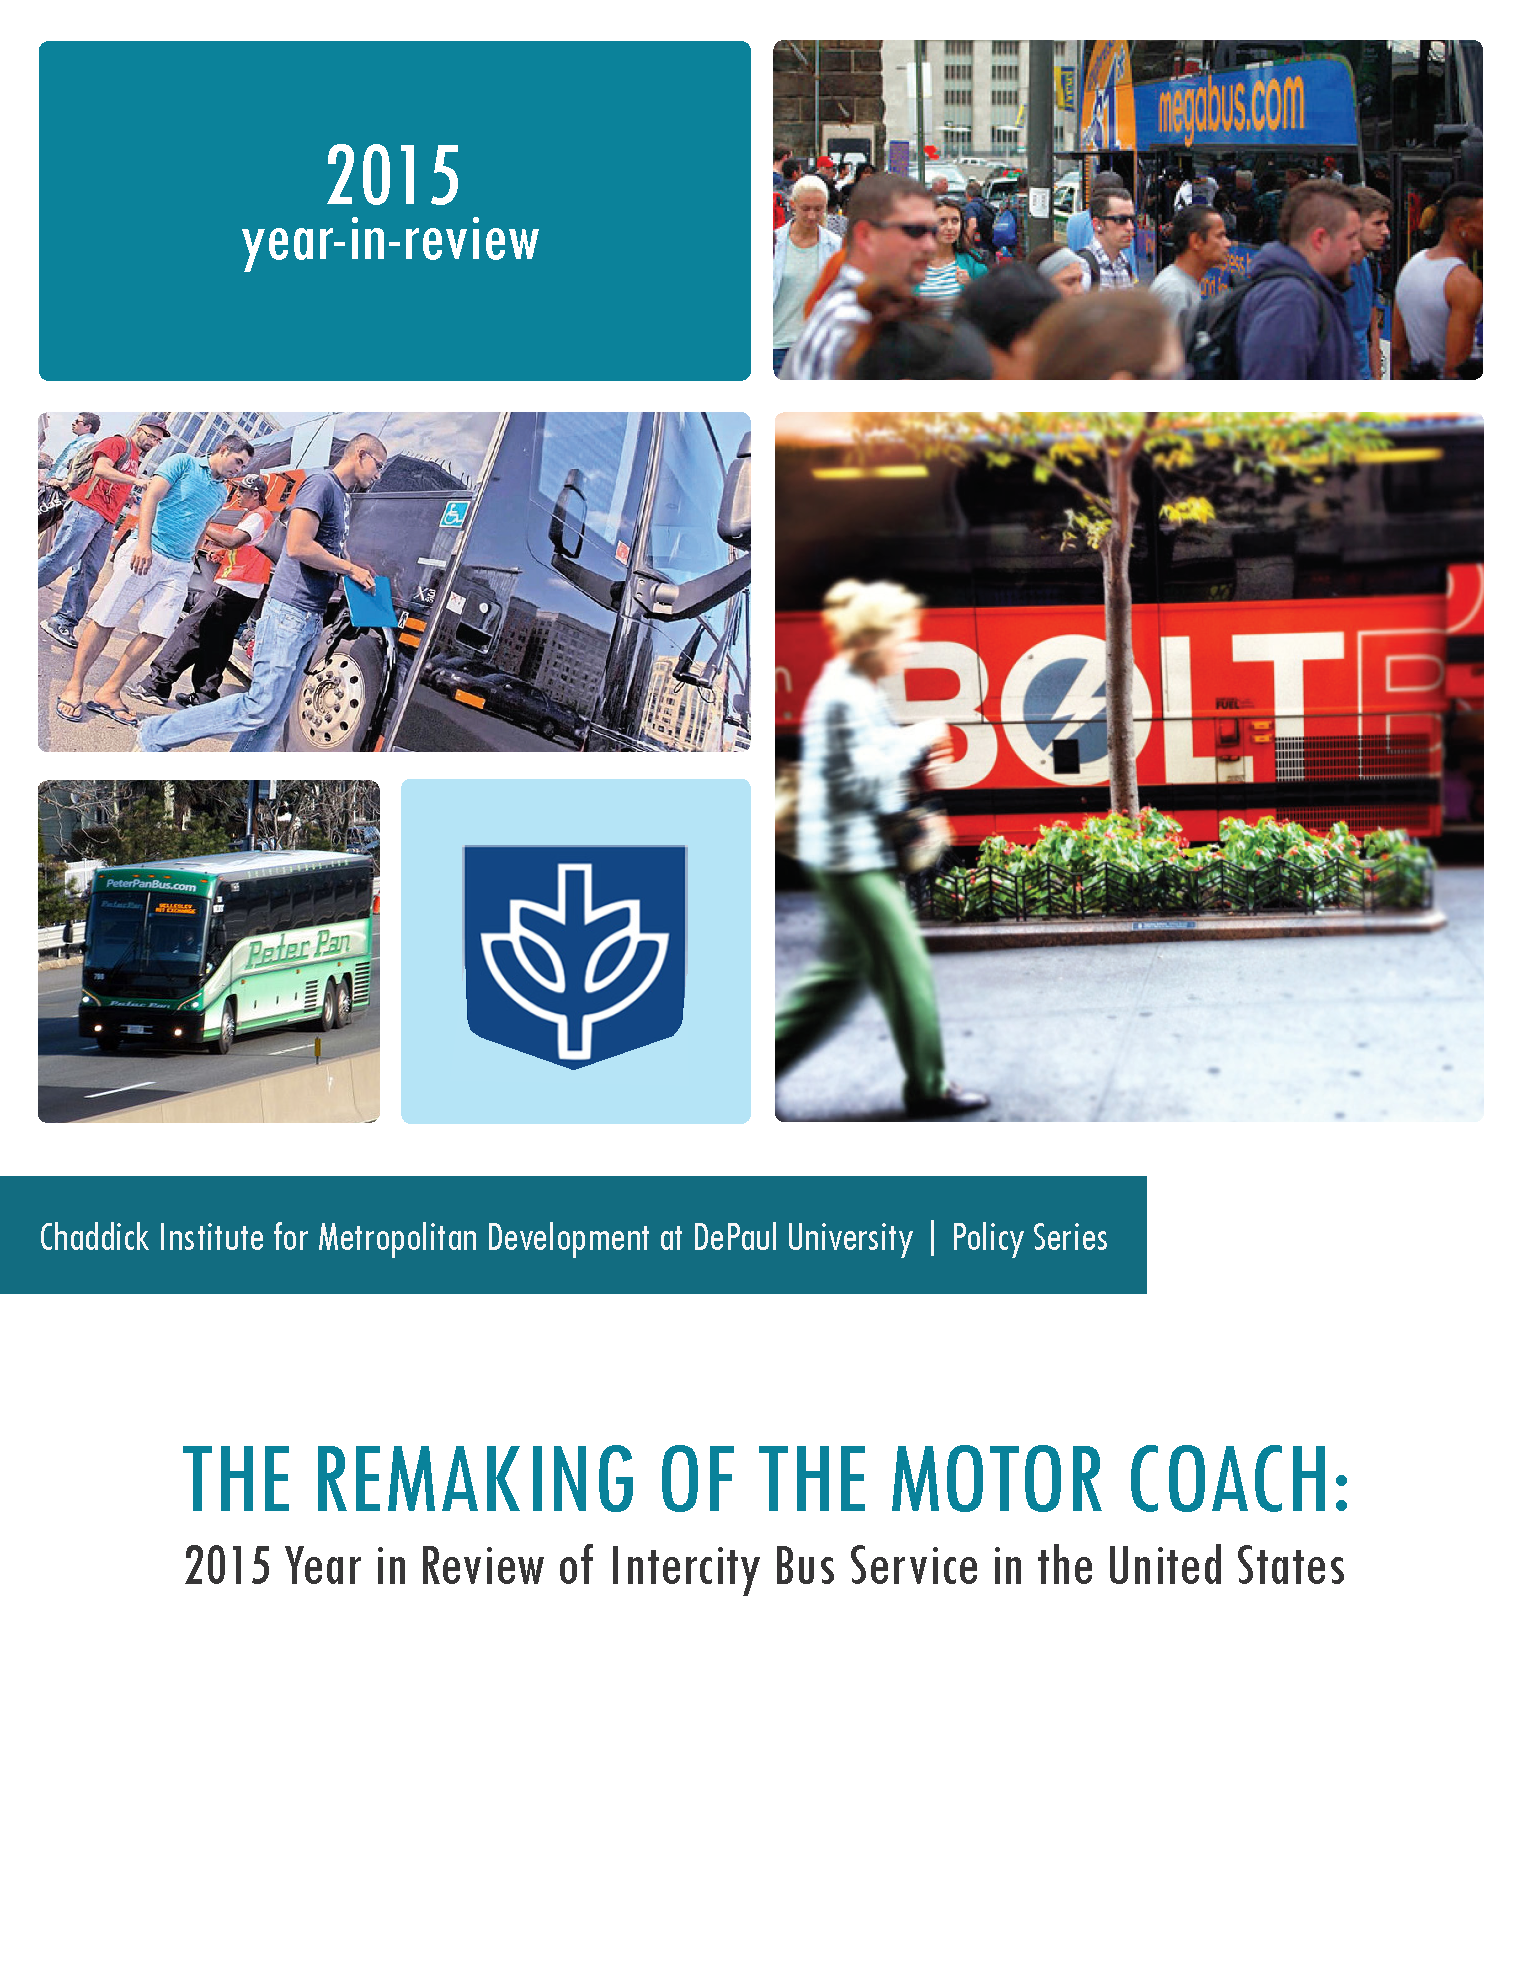 2016 Bus Study Cover